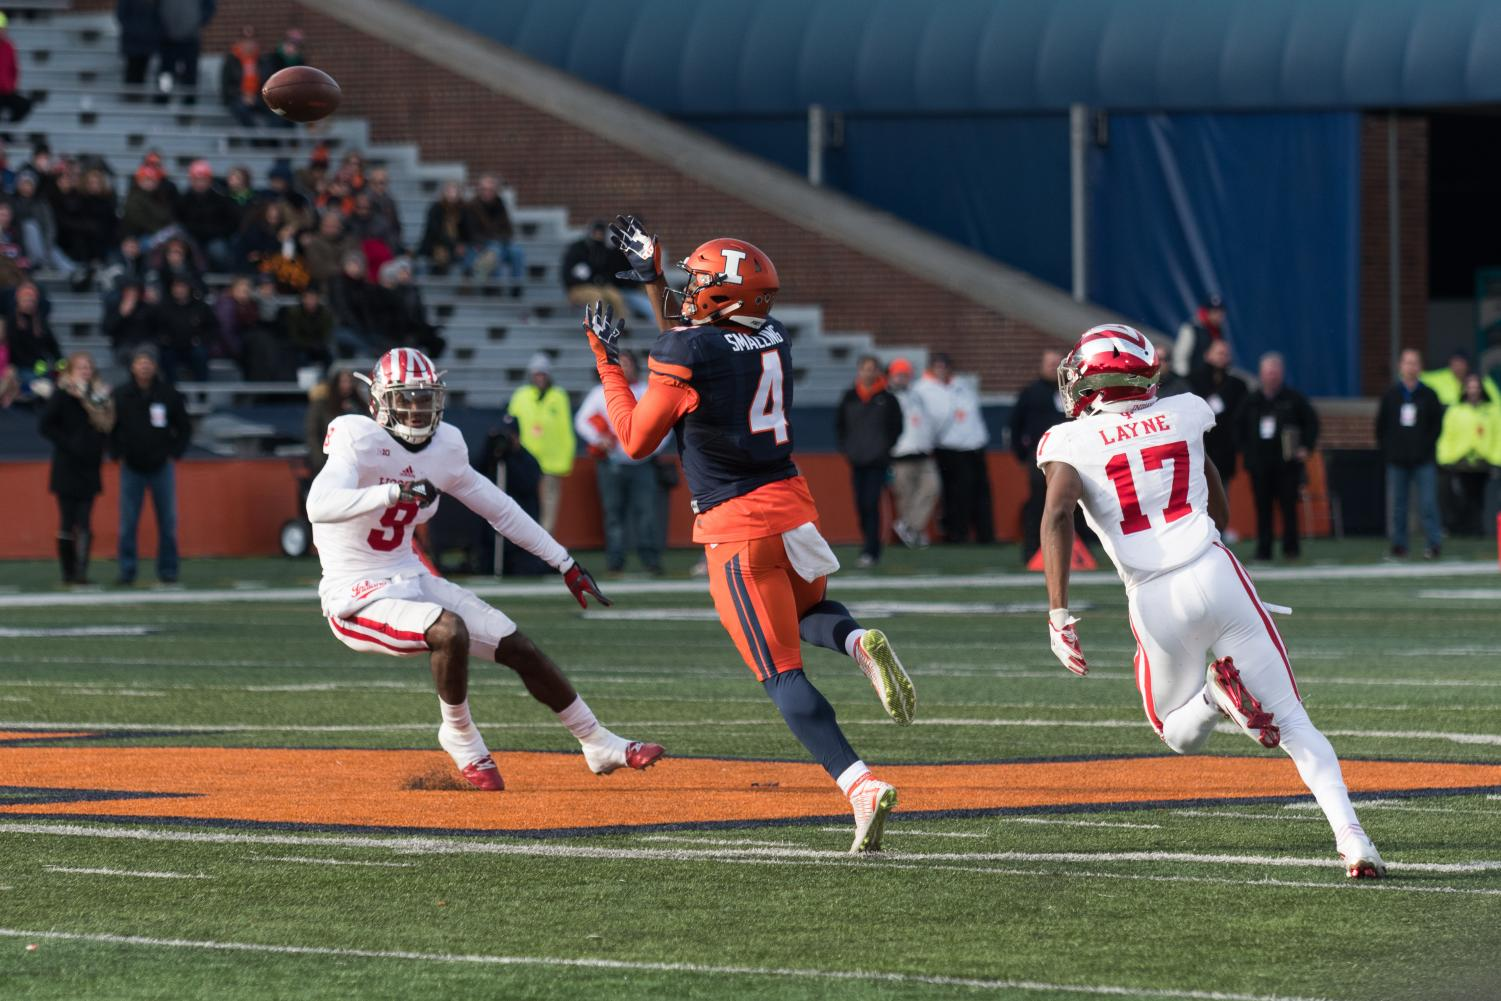 Sophomore wide receiver Ricky Smalling goes up for a catch in the game against Indiana at Memorial Stadium on Nov. 11, 2017. Smalling looks to highlight the Illinois offense this season as it switches to a spread style. Photo by: Quinten Shaw